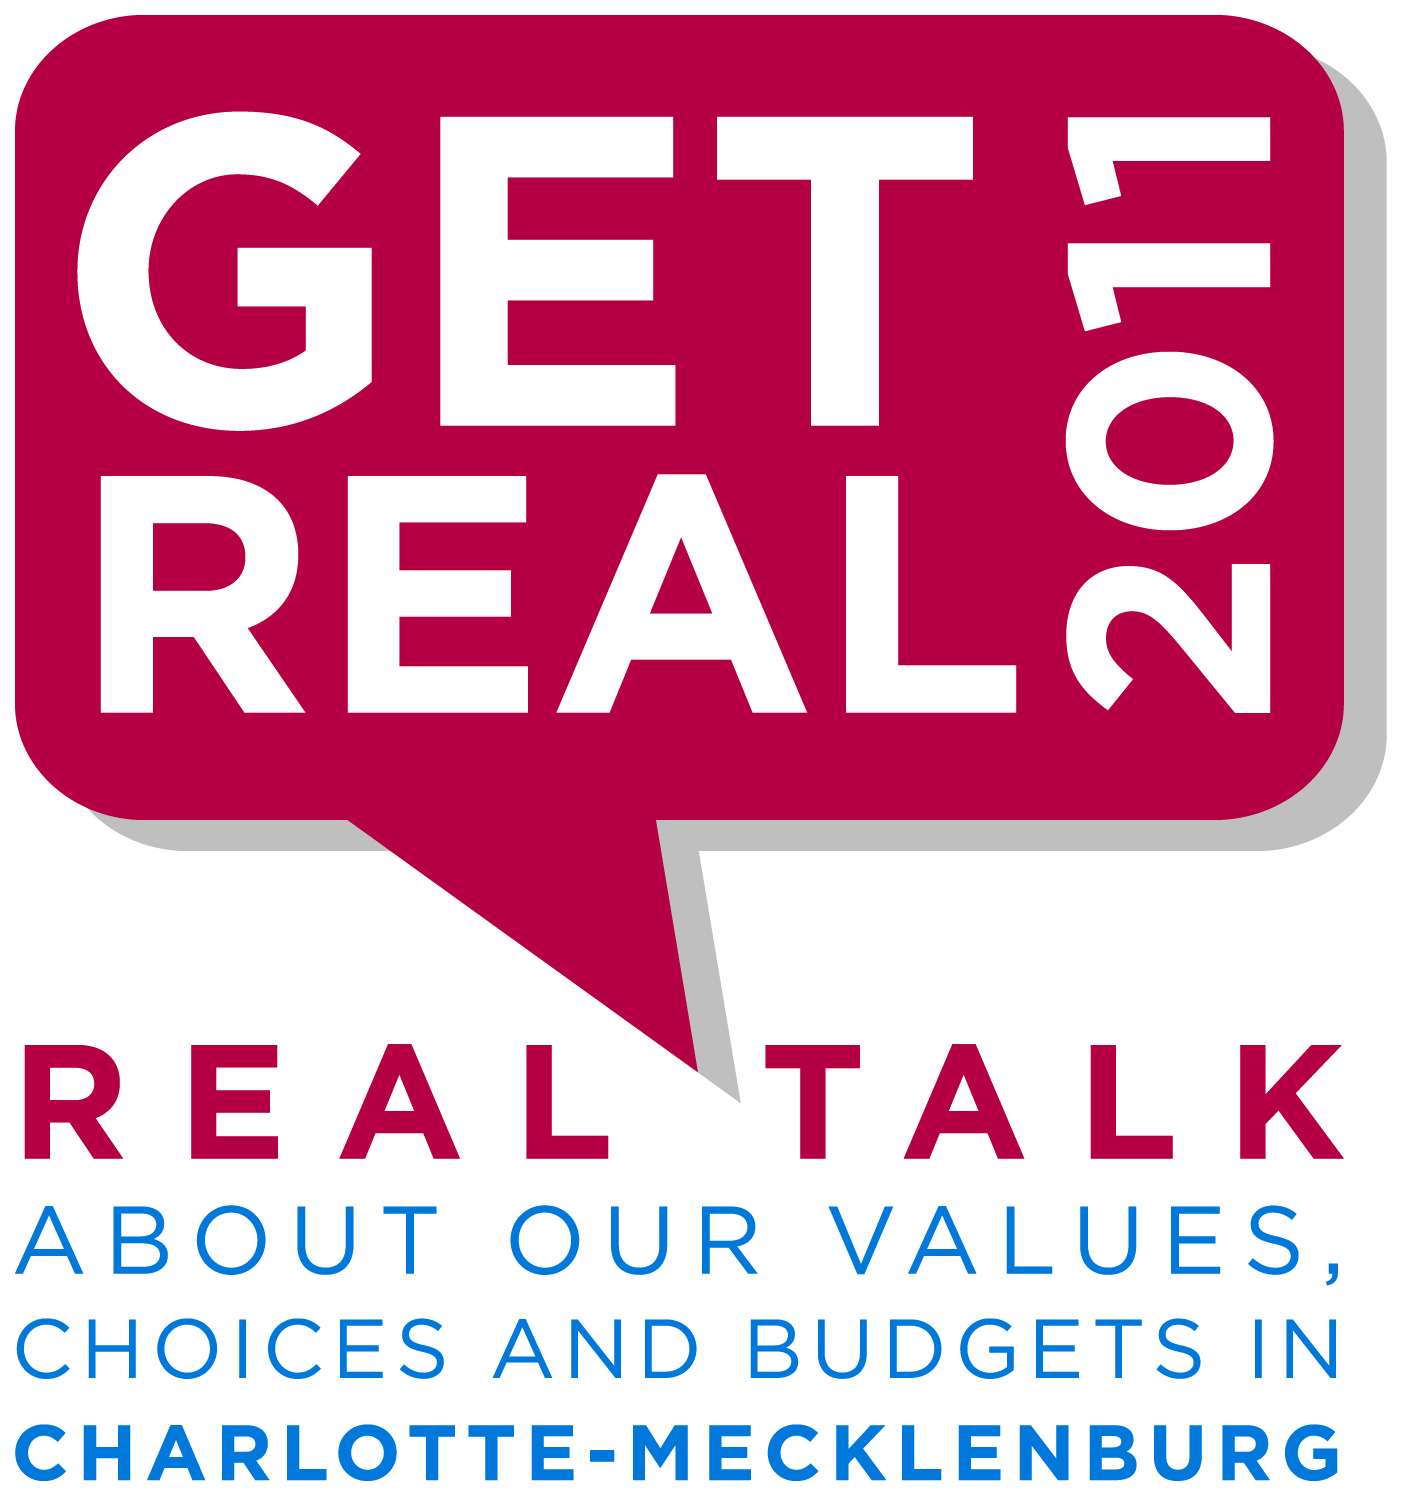 SOLID designed and produced Get Real, engaging over 75 small groups of residents across the community in discussions about values and priorities that were important to guide public budget decisions.   The results were given to elected officials to support decision-making when tough budget choices.  Click the Get Real logo to see a short video on outcomes and impacts.